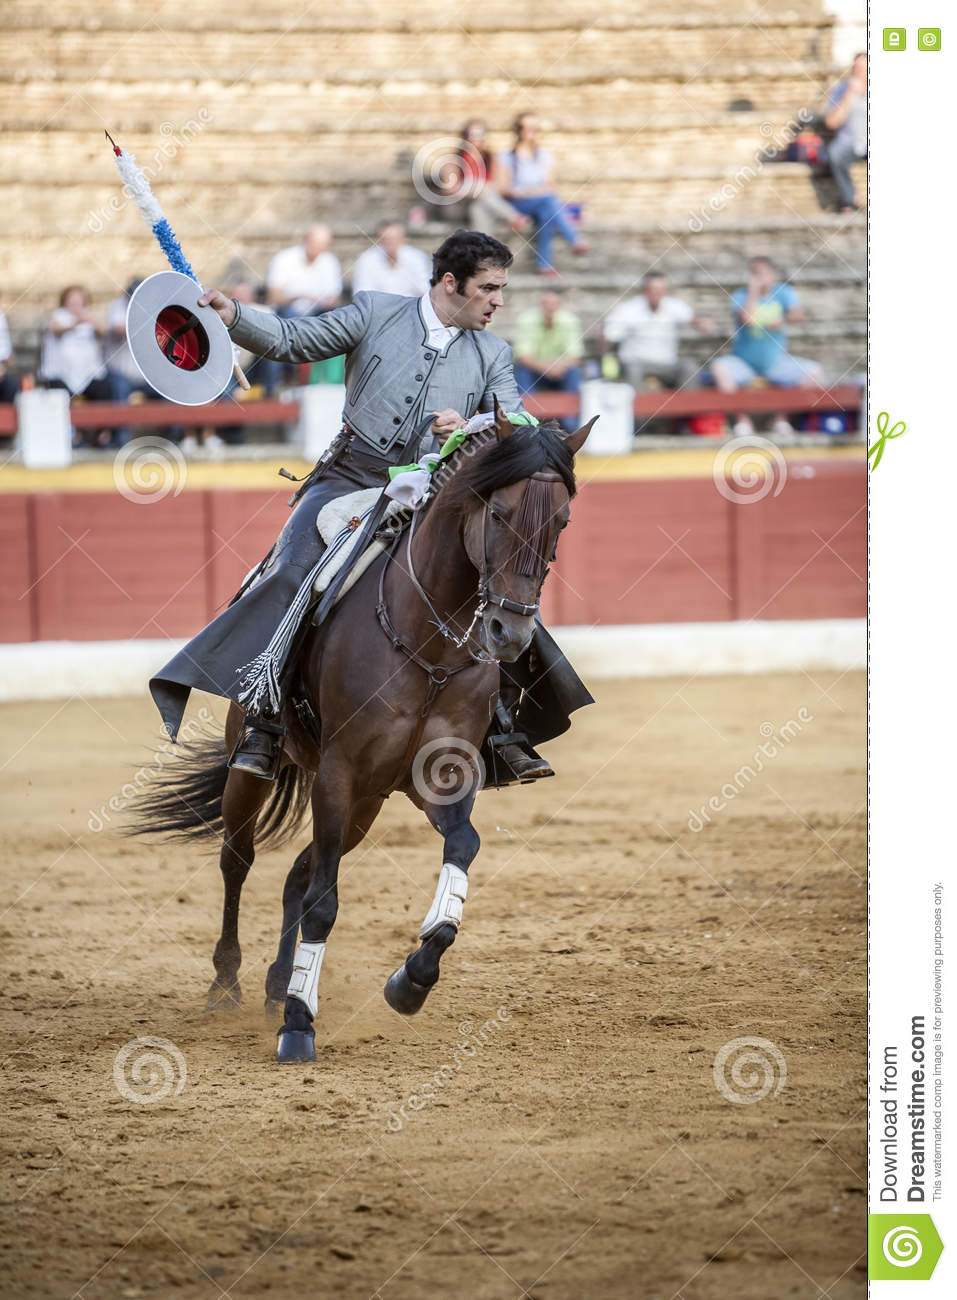 Alvaro Montes, bullfighter on horseback spanish, Ubeda, Spain